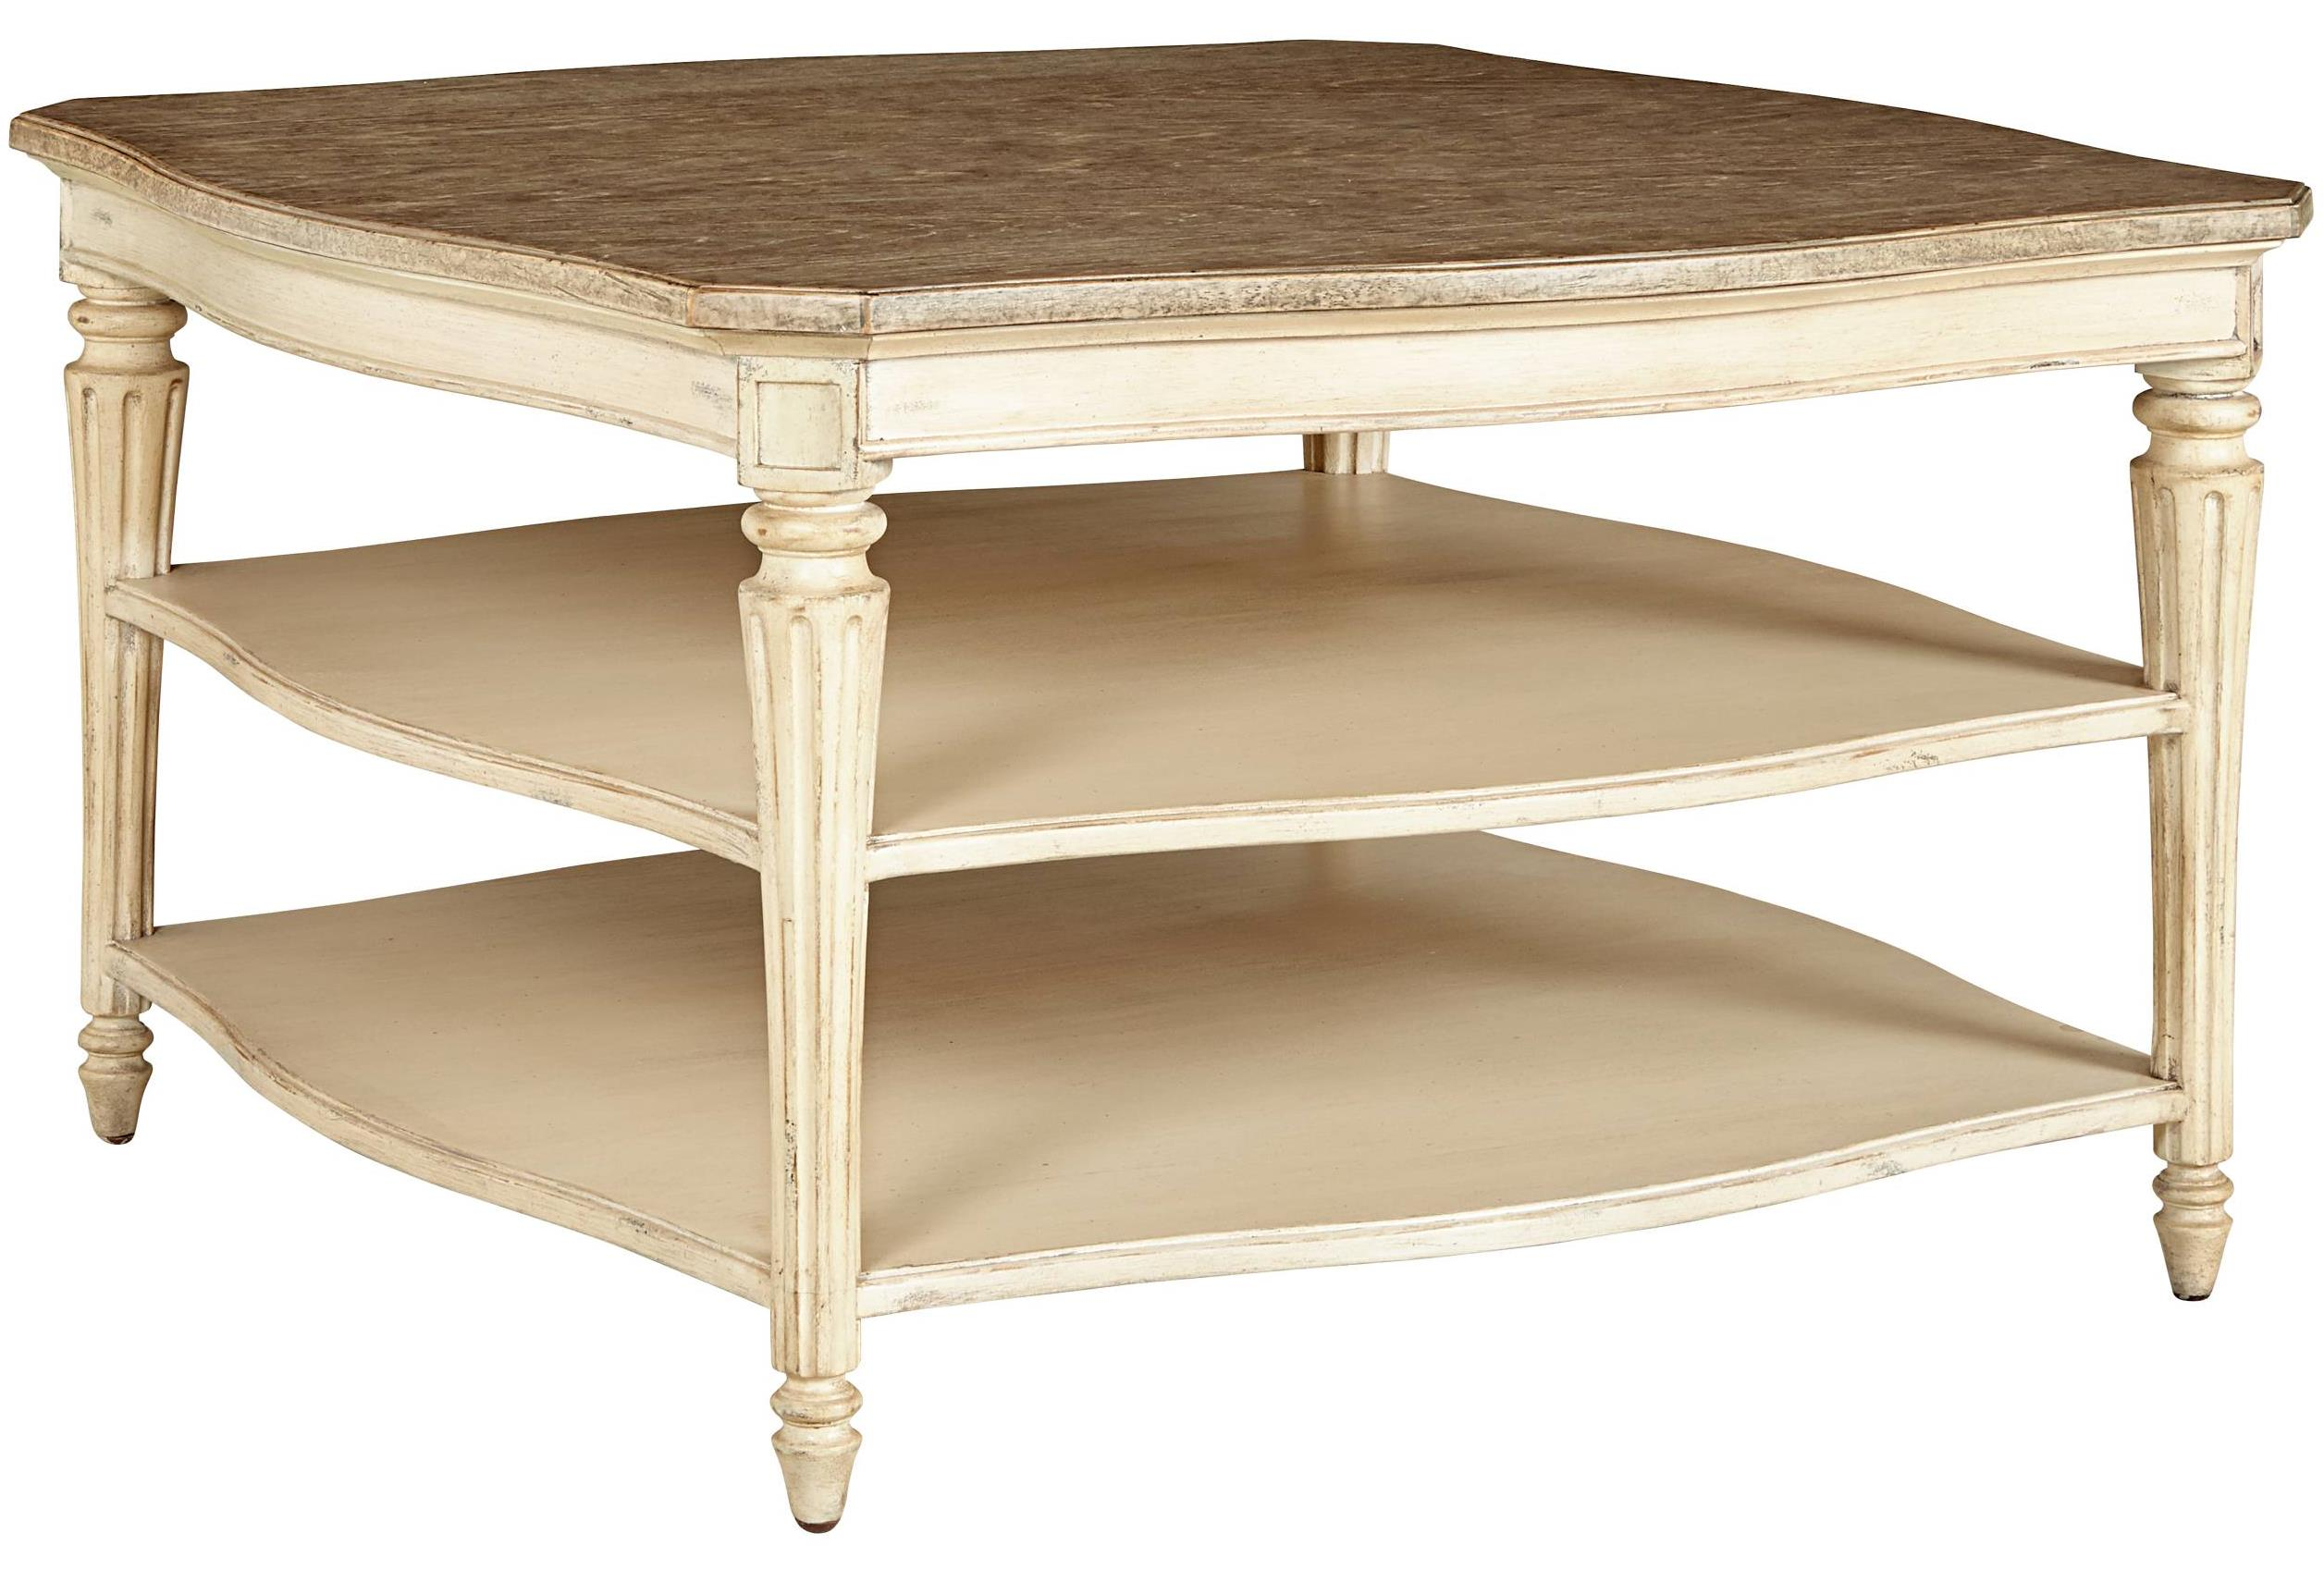 Stanley Furniture European Cottage Cocktail Table - Item Number: 007-25-02